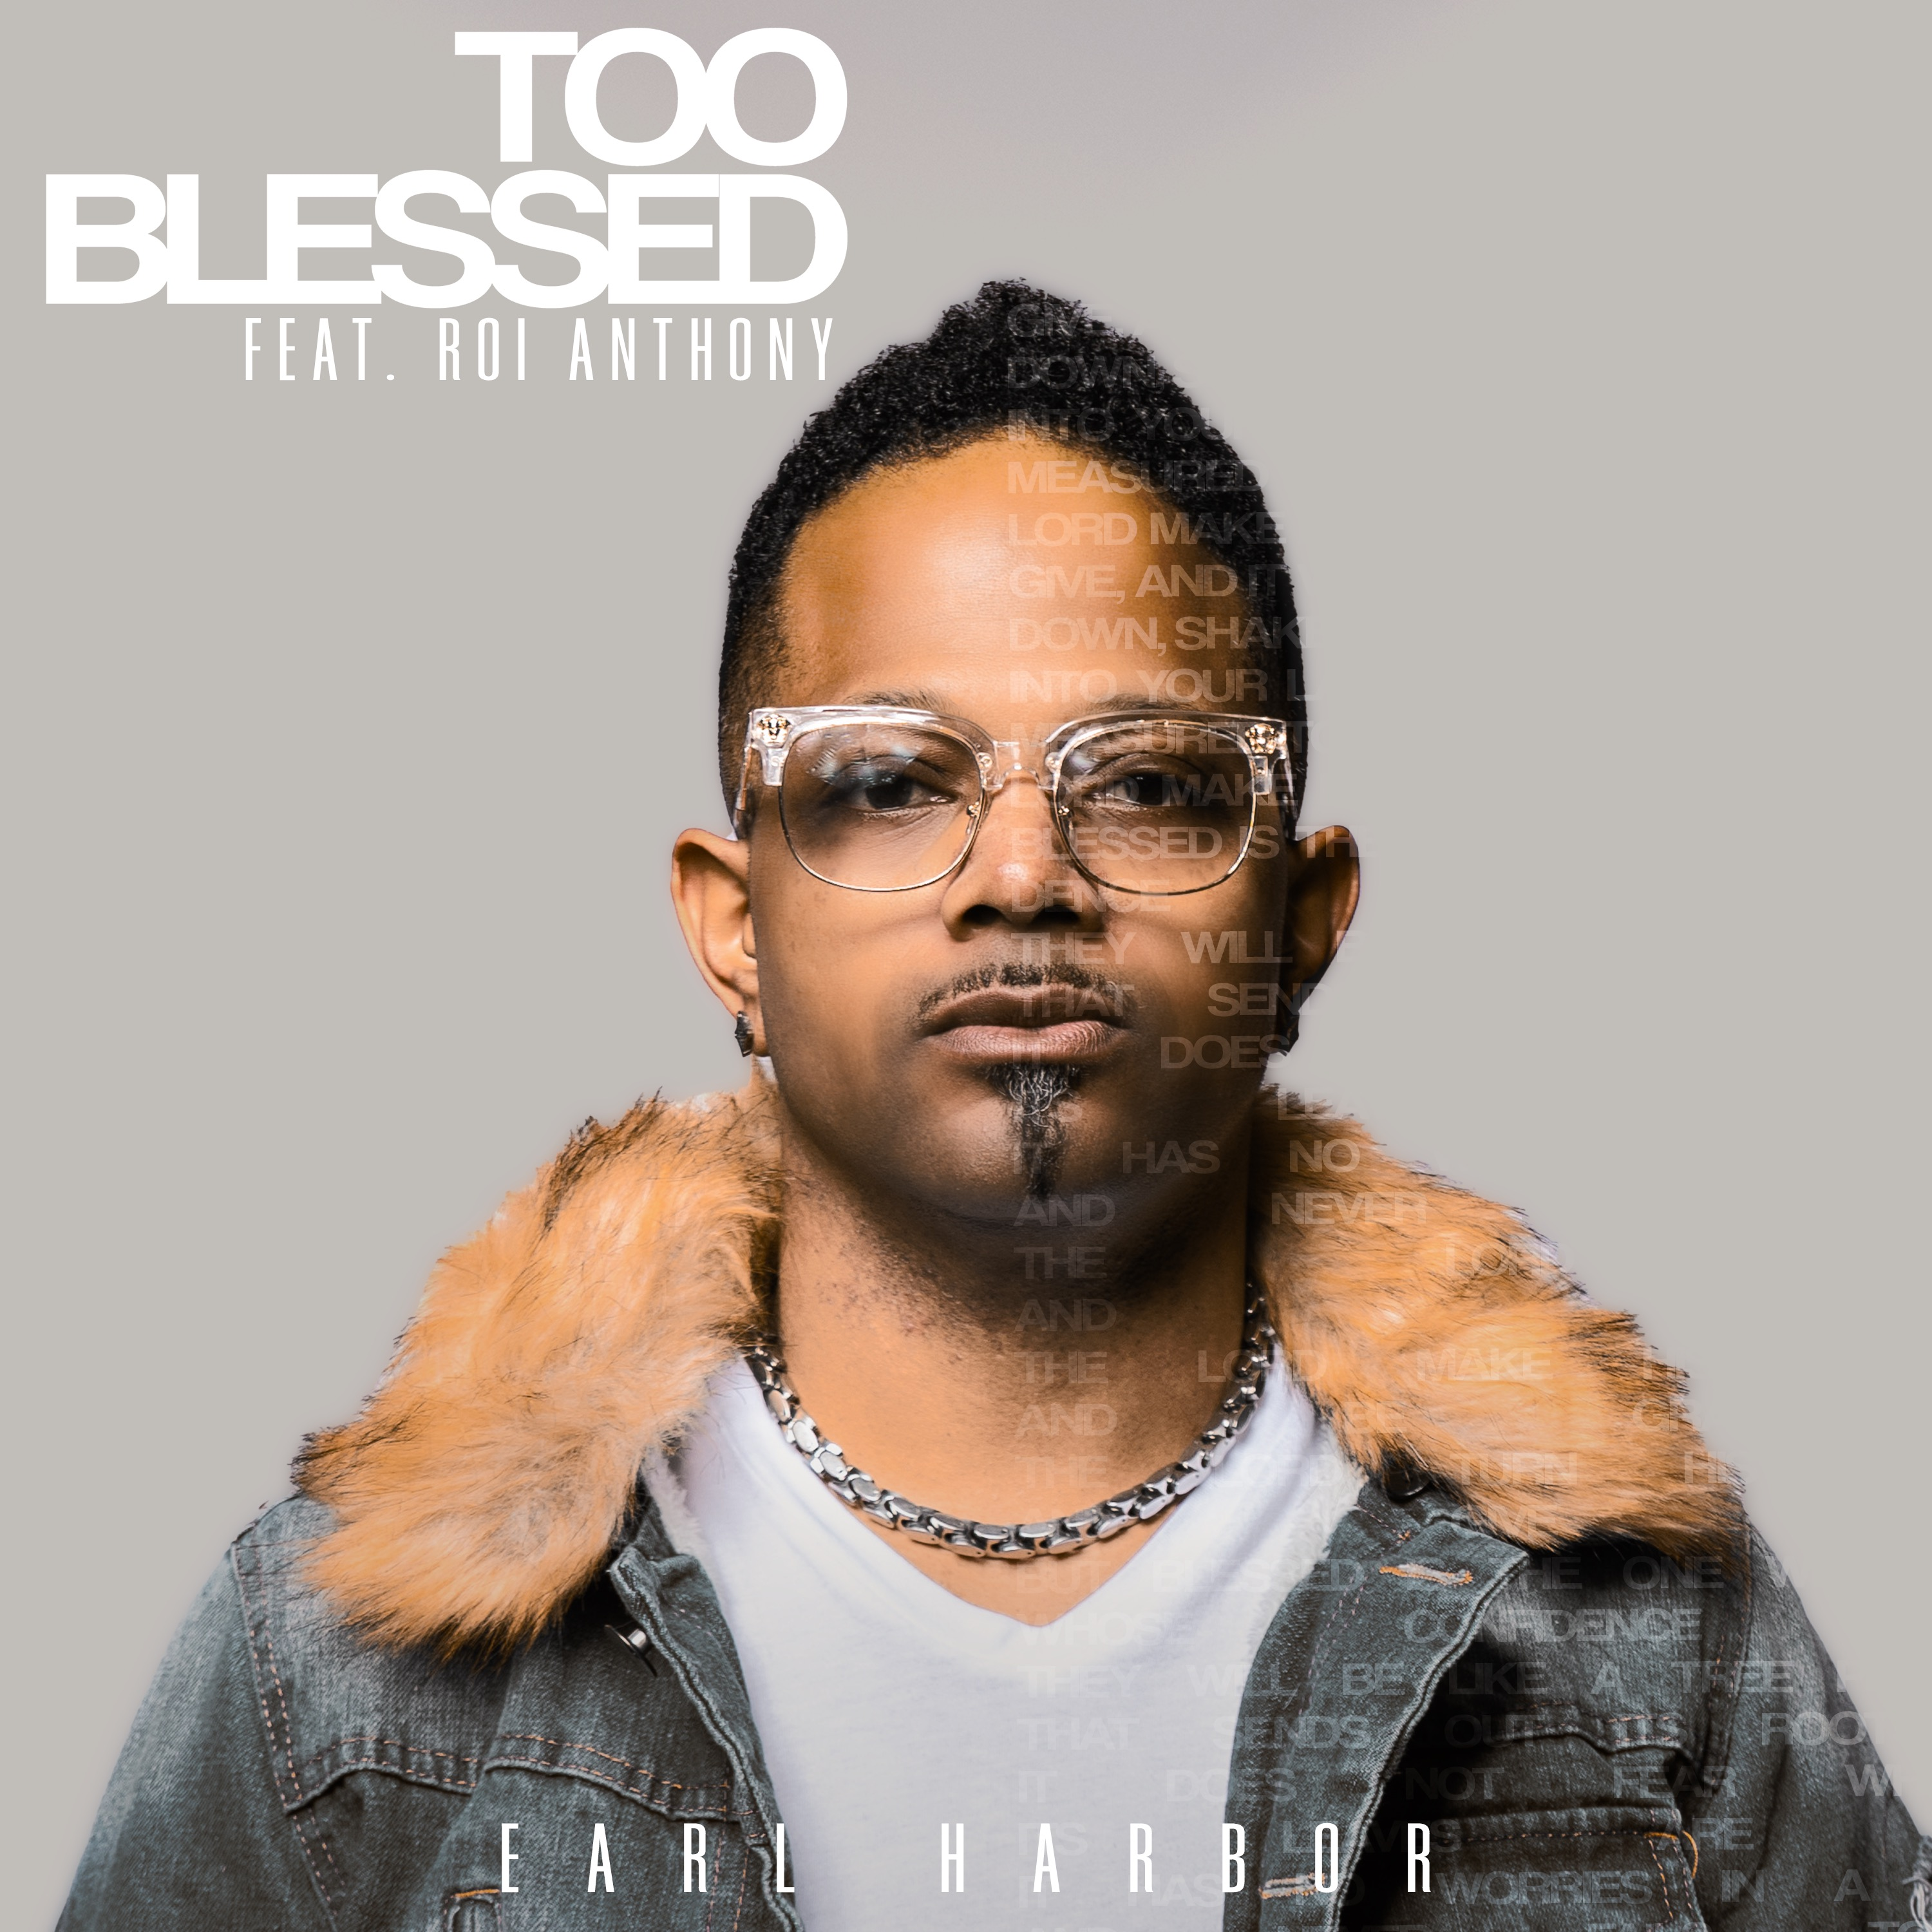 Art for Too Blessed Ft. Roi Anthony by Earl Harbor